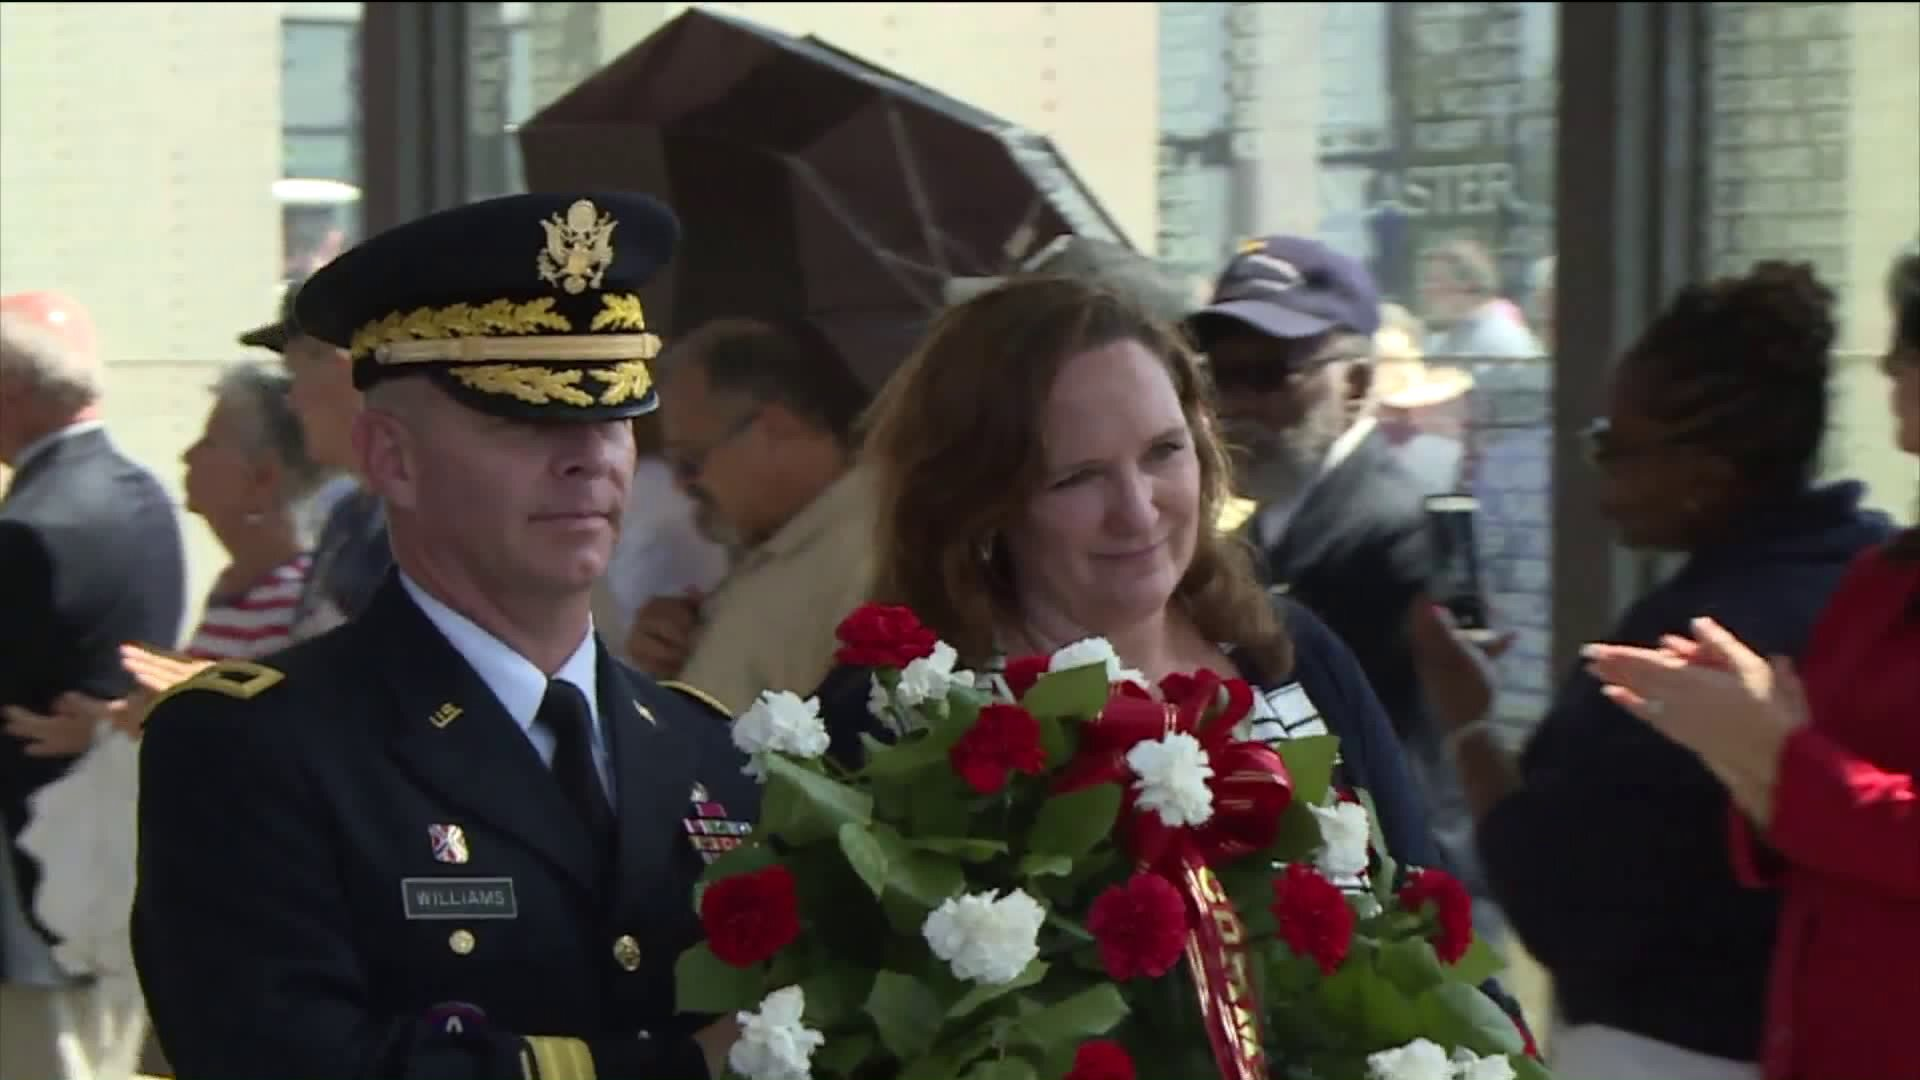 Photos: Hundreds attend Memorial Day ceremony in Richmond: 'Remember those who gave everything'